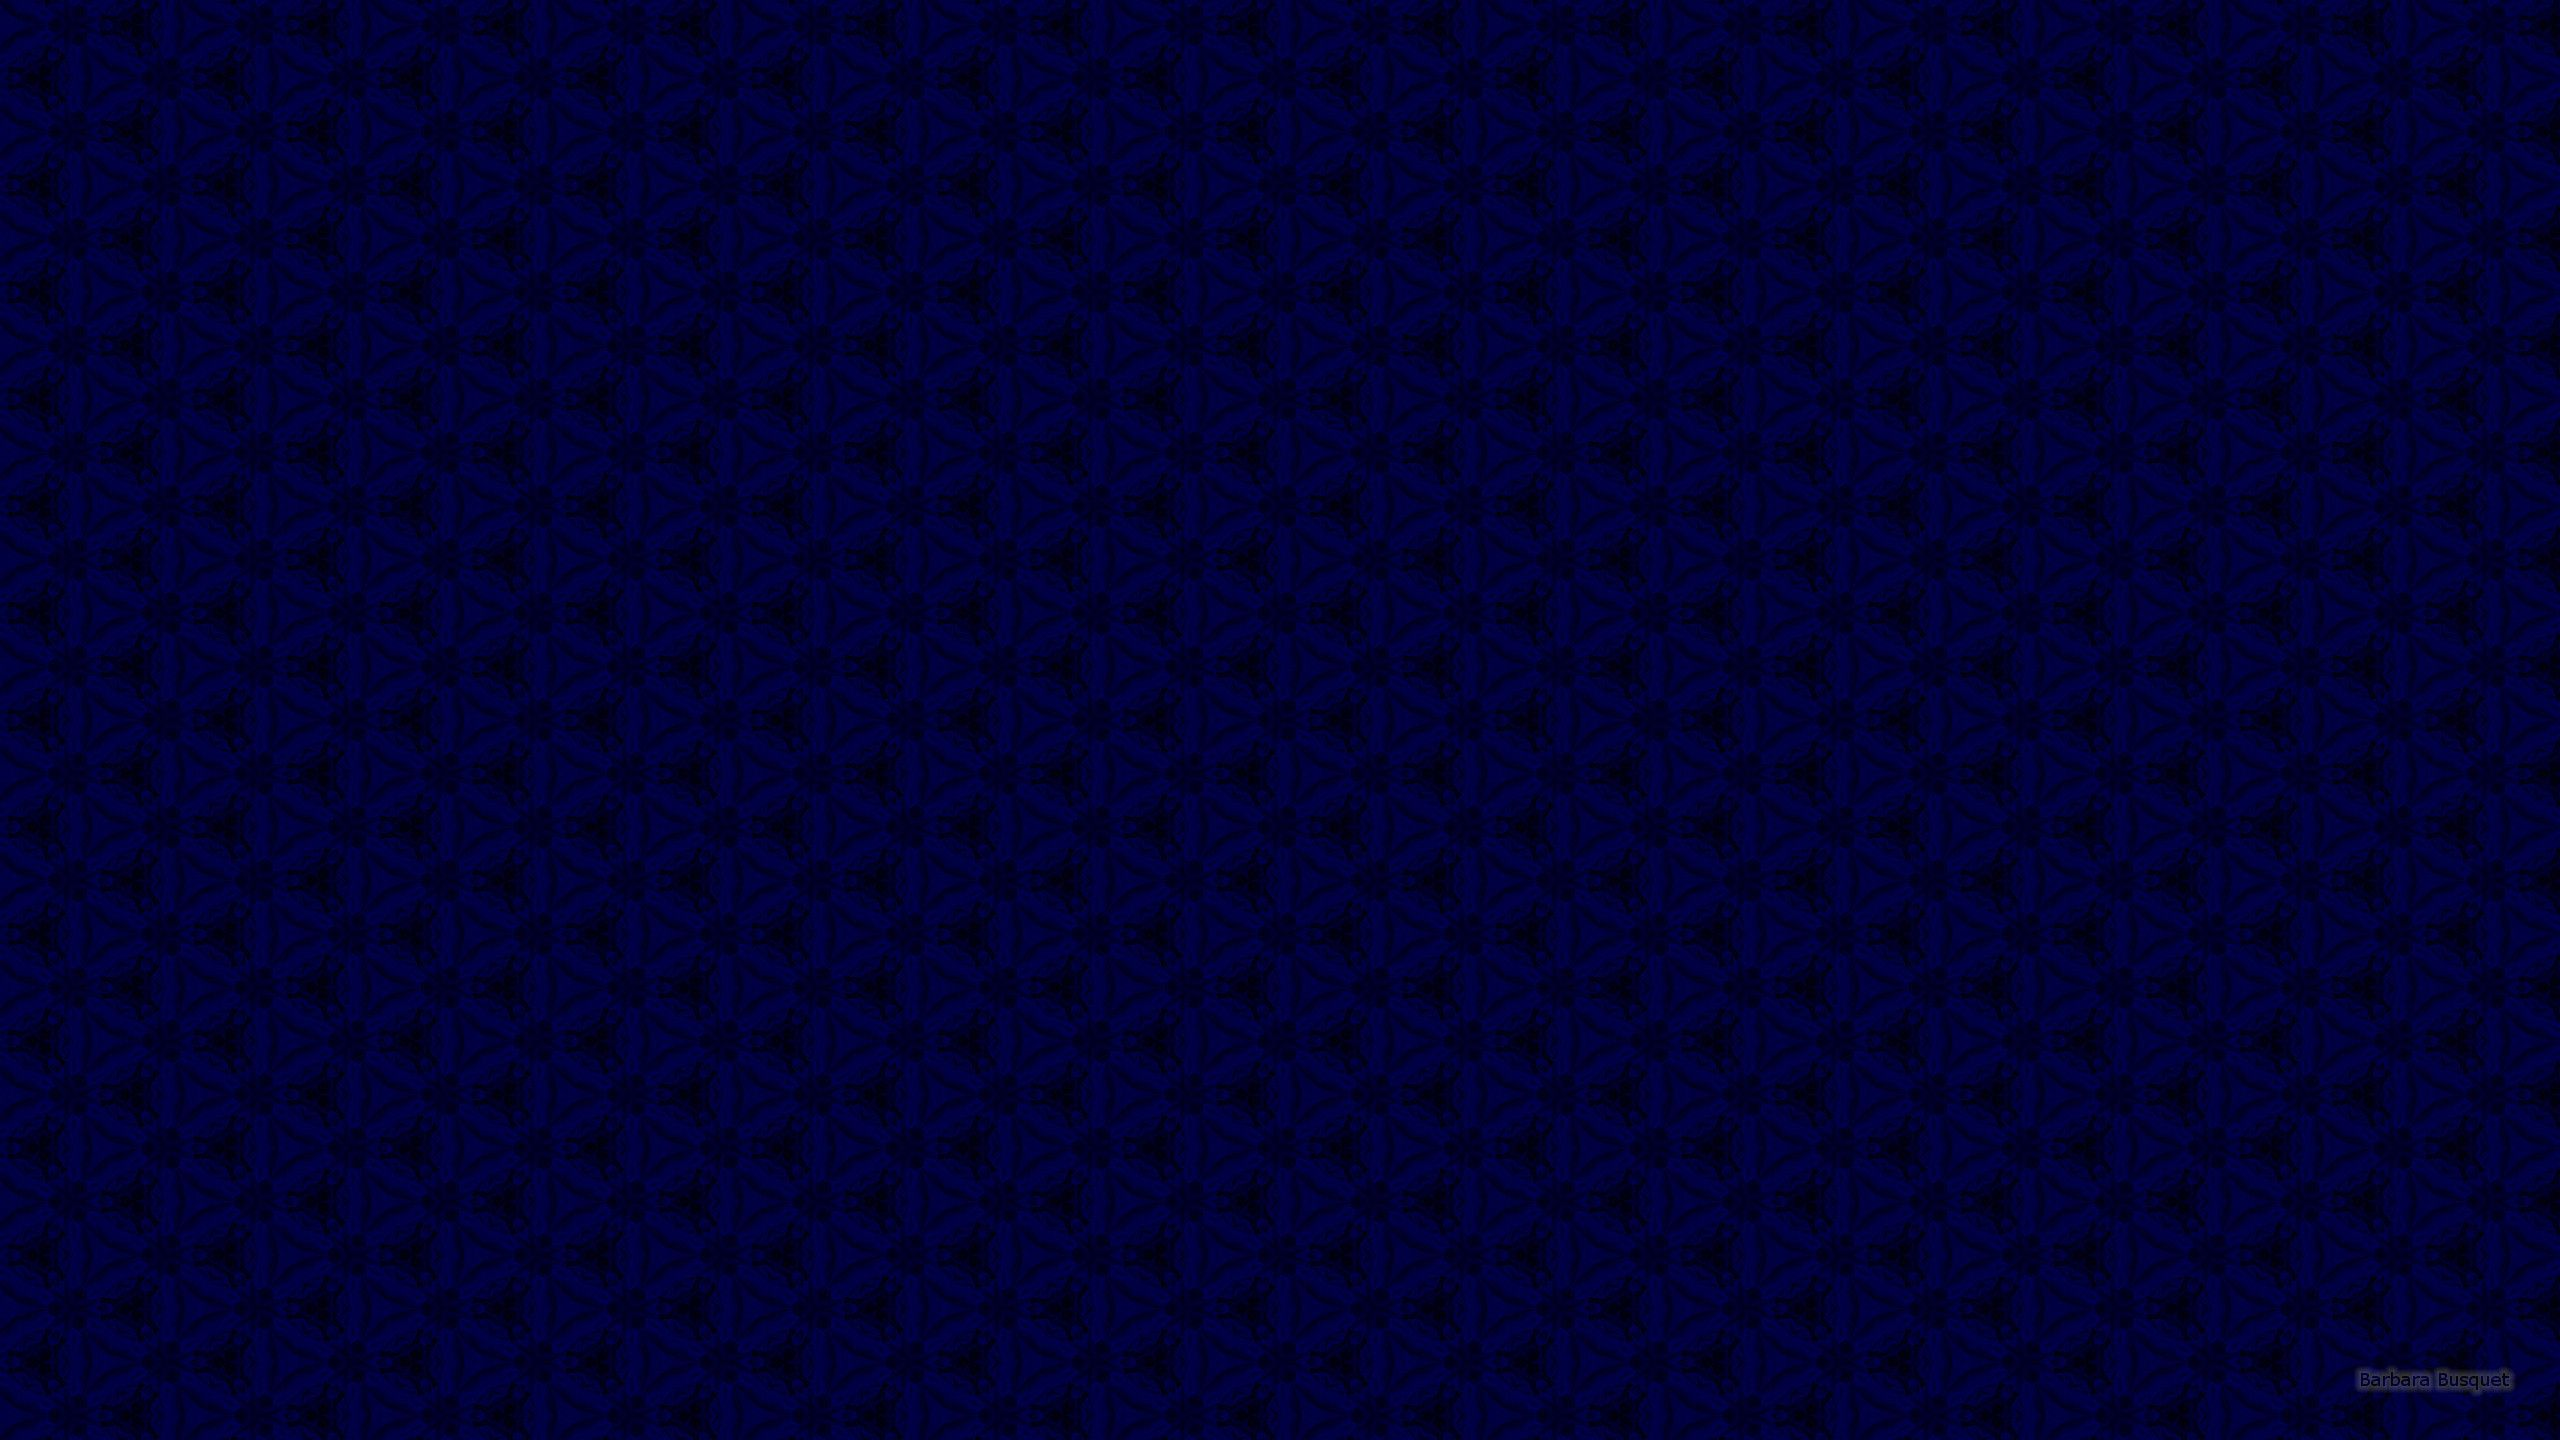 full size Navy Blue Wallpapers 2560x1440 for hd 1080p